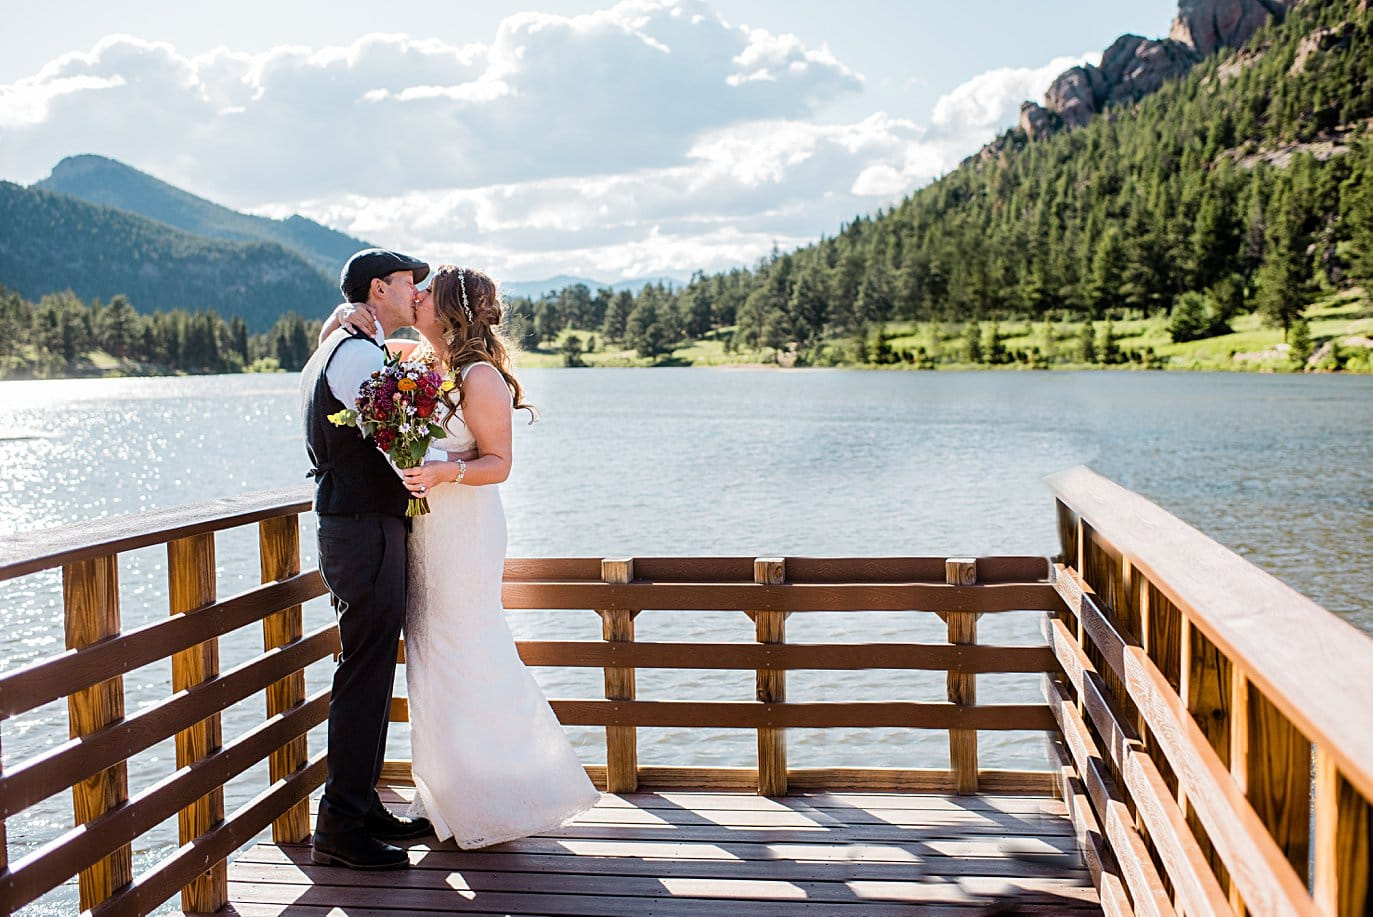 bride and groom first kiss at Lily Lake Elopement by Estes Park elopement photographer Jennie Crate